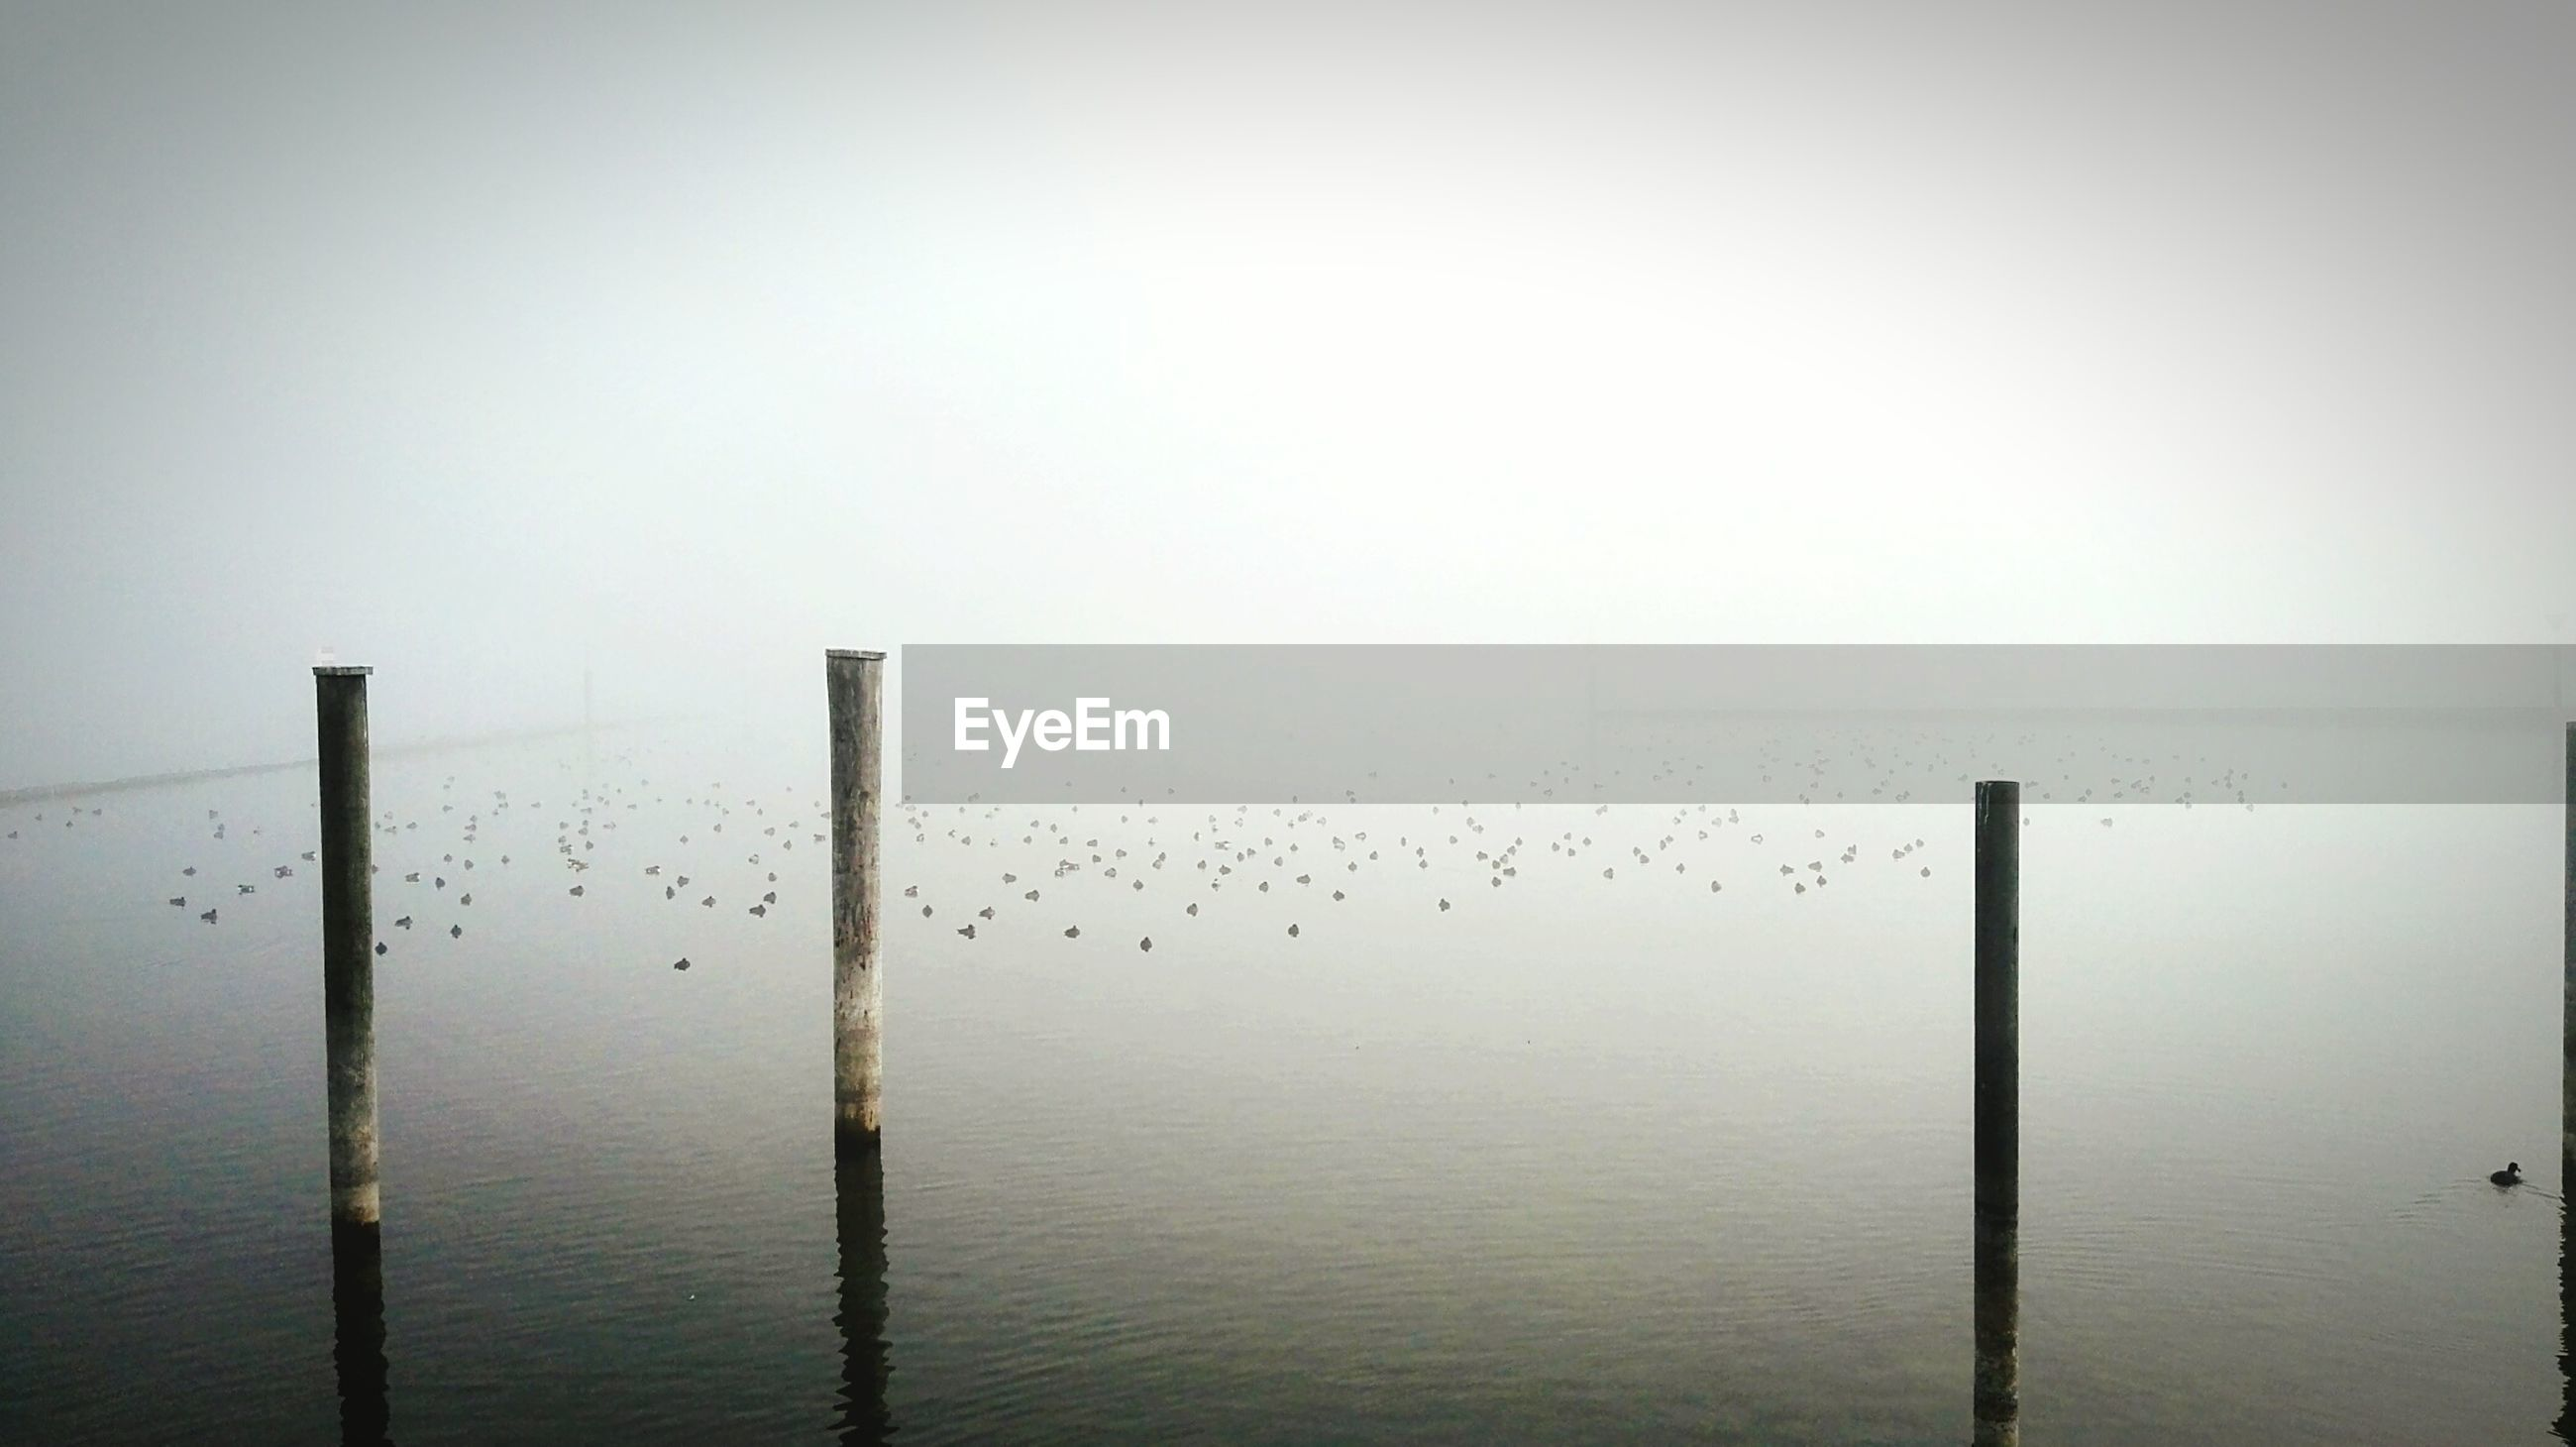 Wooden posts in river against sky during foggy weather